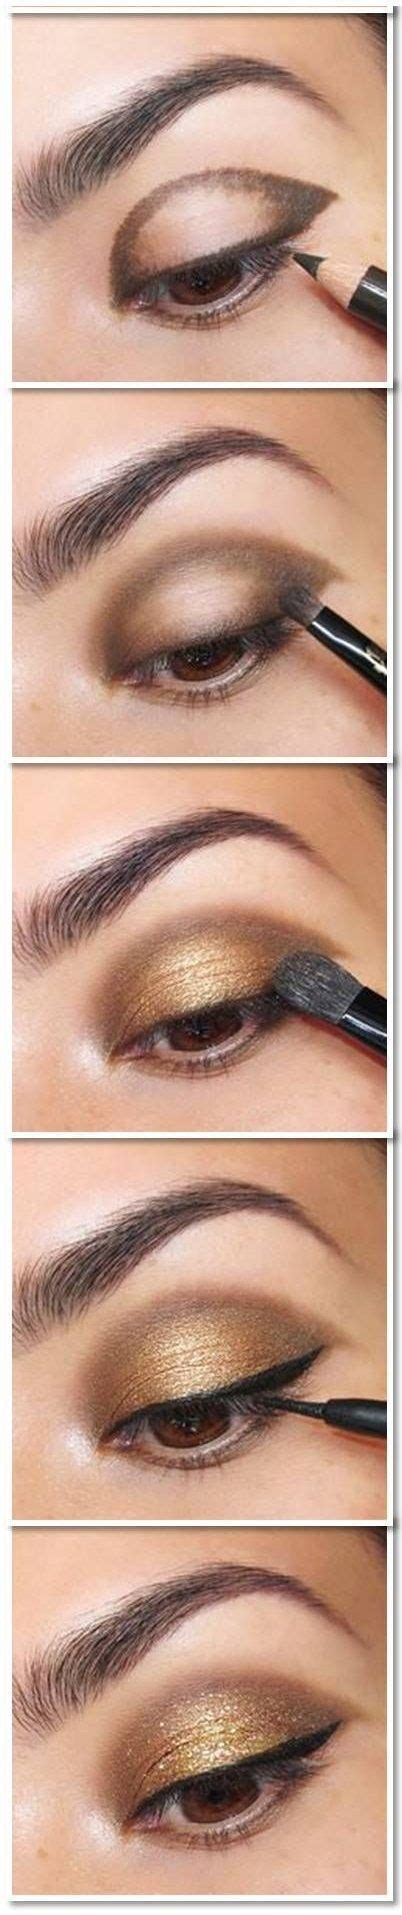 Eyeshadow Gelap tips pengaplikasian eye make up bar indonesia